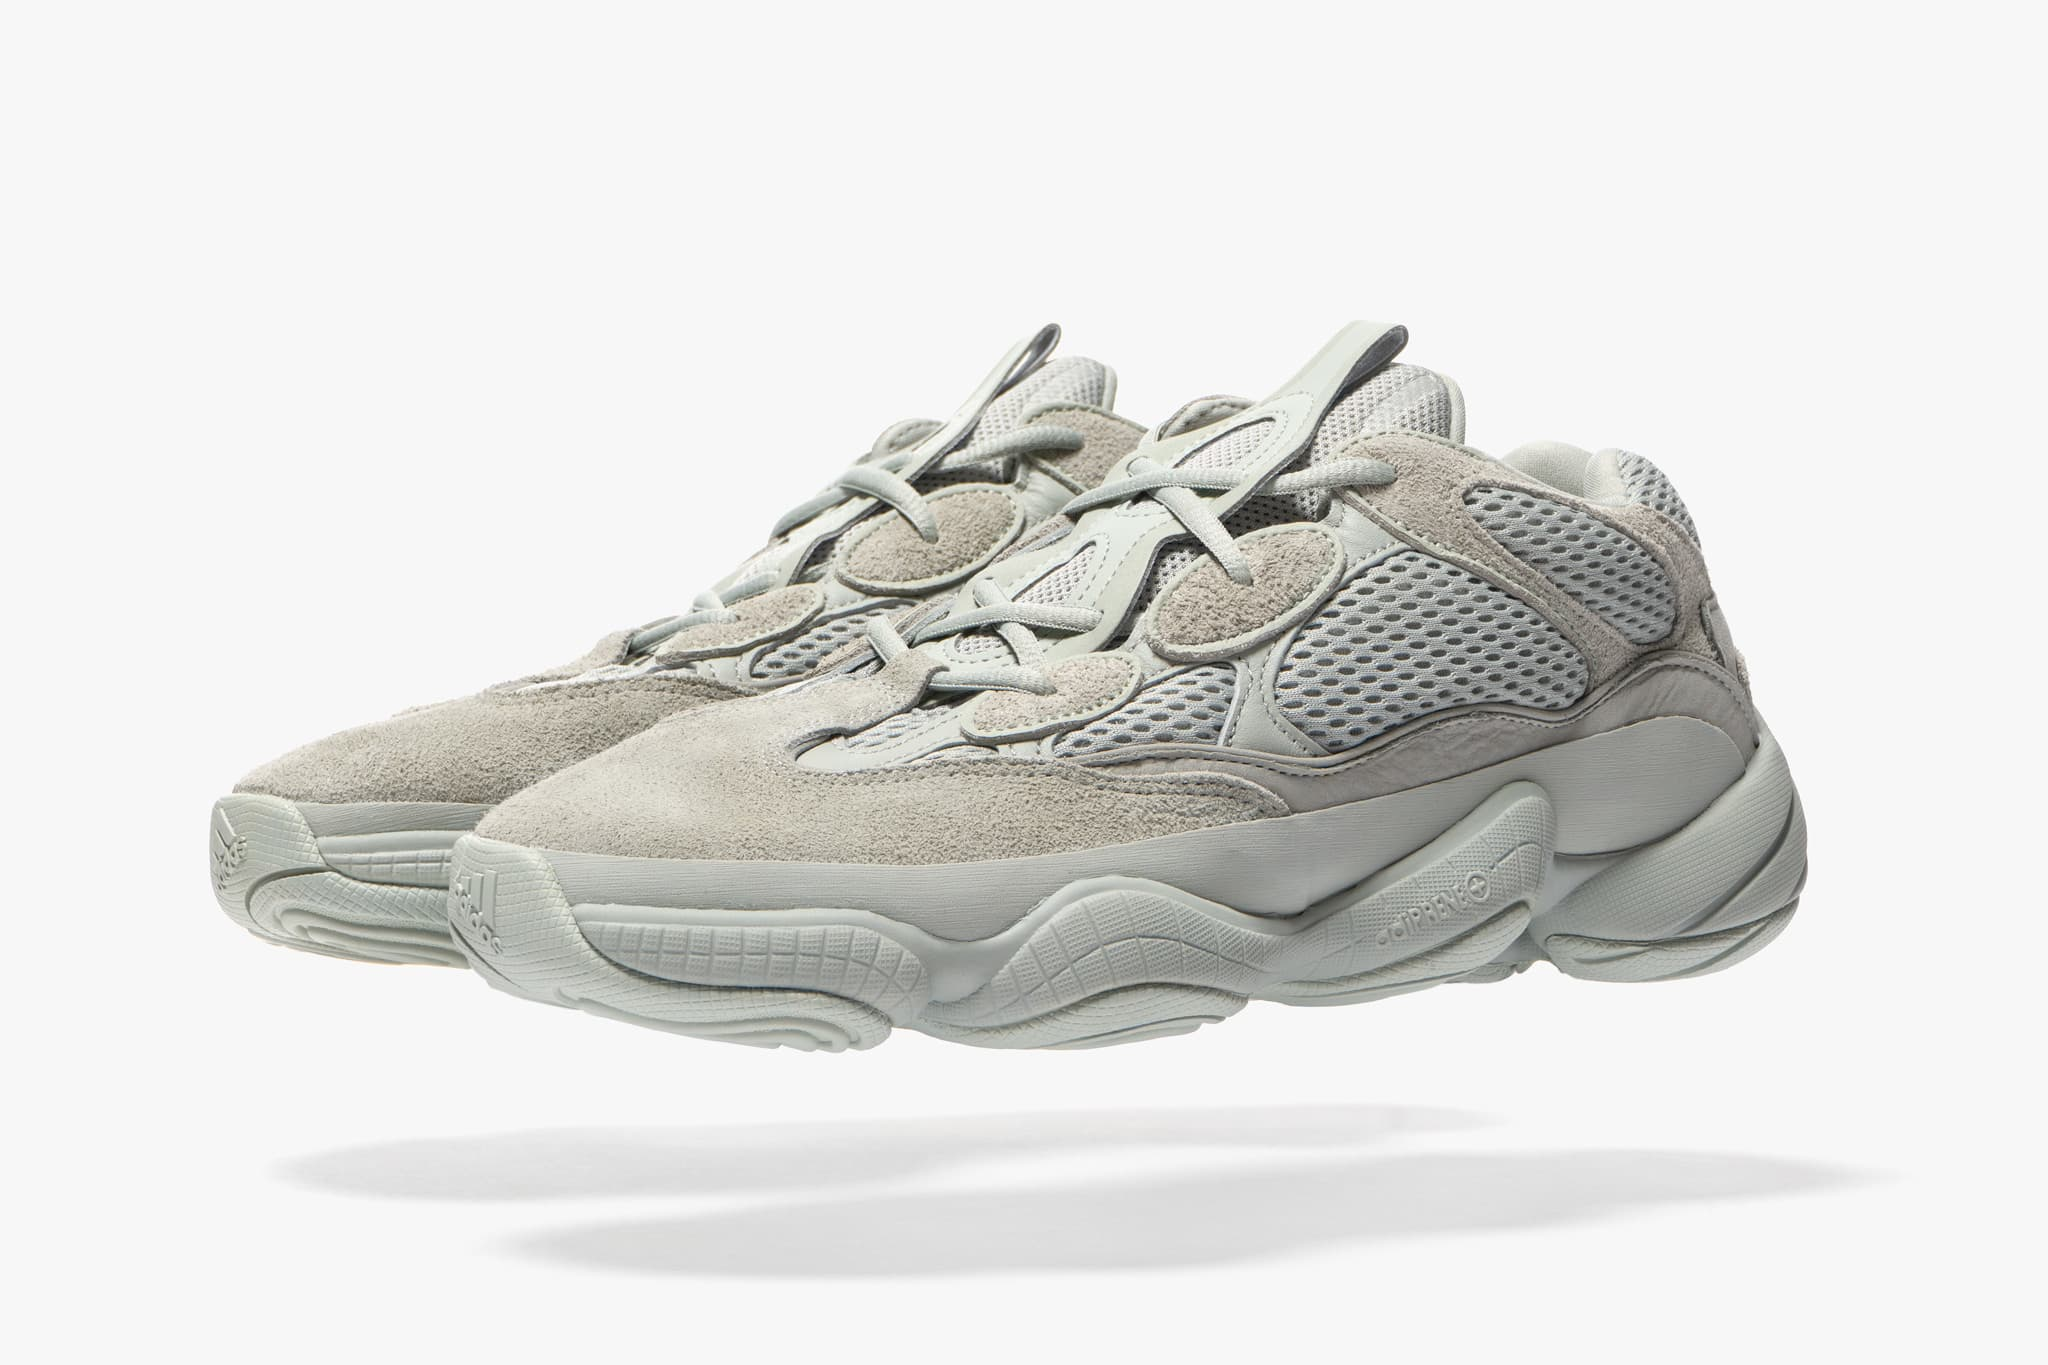 quality design 71b3a 8831a adidas Yeezy 500 'Salt' | Release Date: 11.30.18 | HAVEN